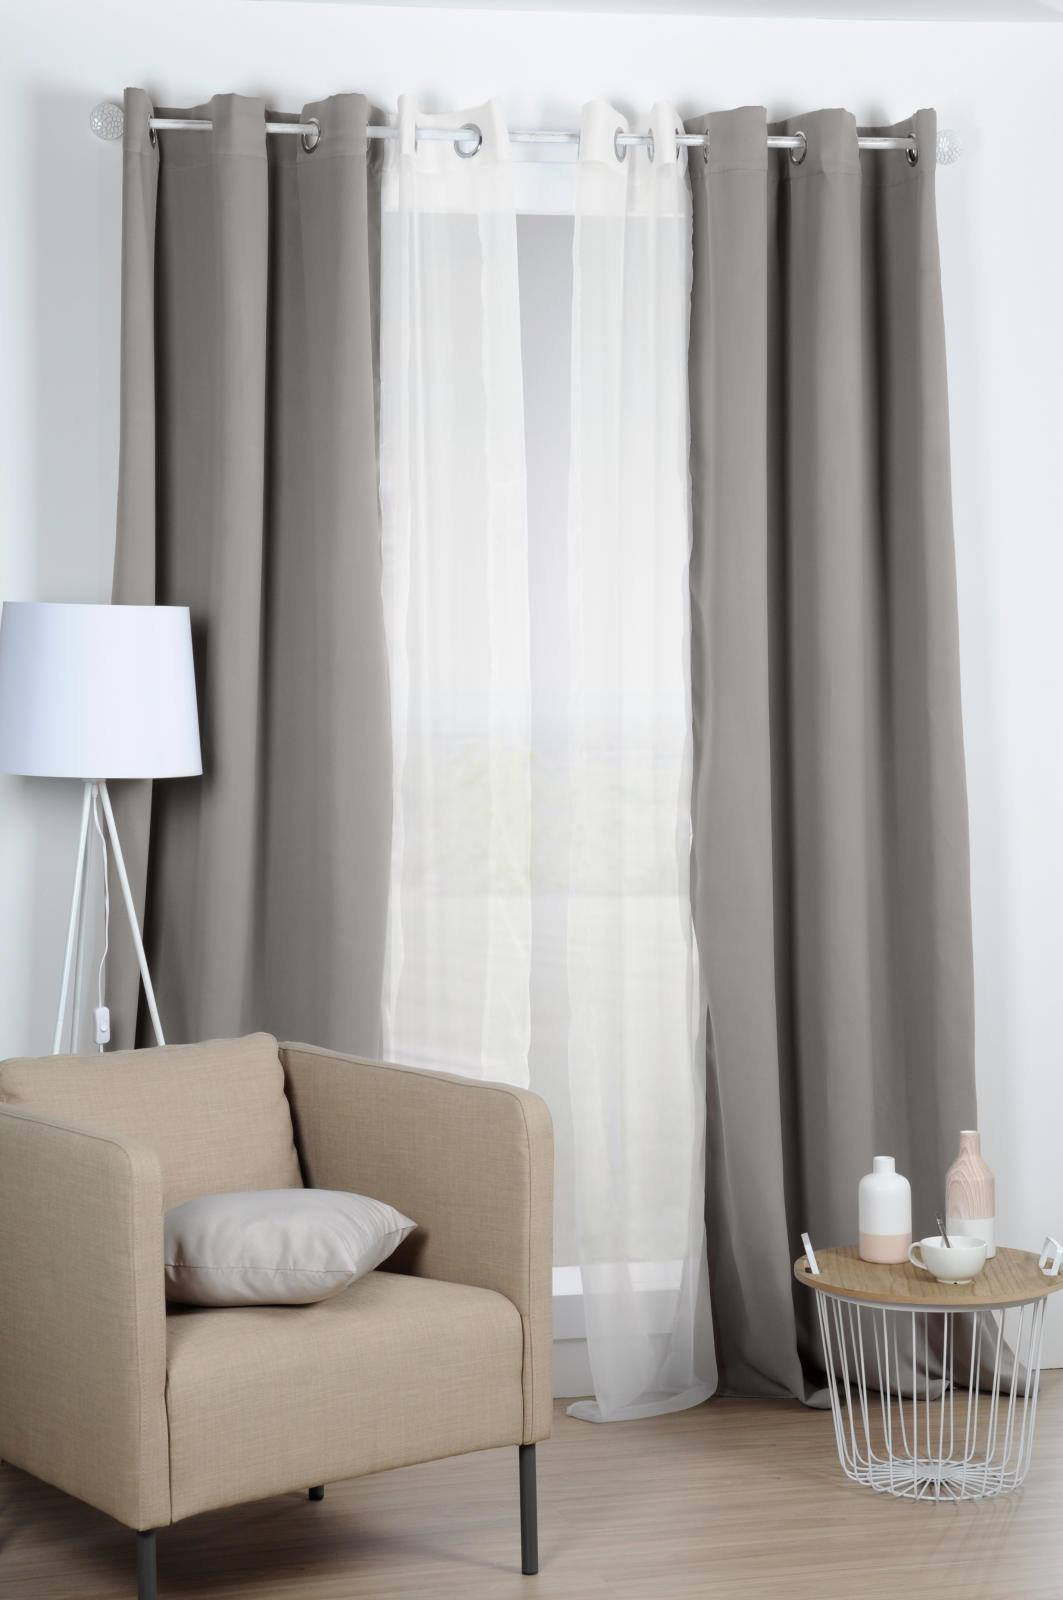 Lovely Casa R64689303 Nelson Rideau Occultant Isolant Polyester Taupe 240 x 135 cm